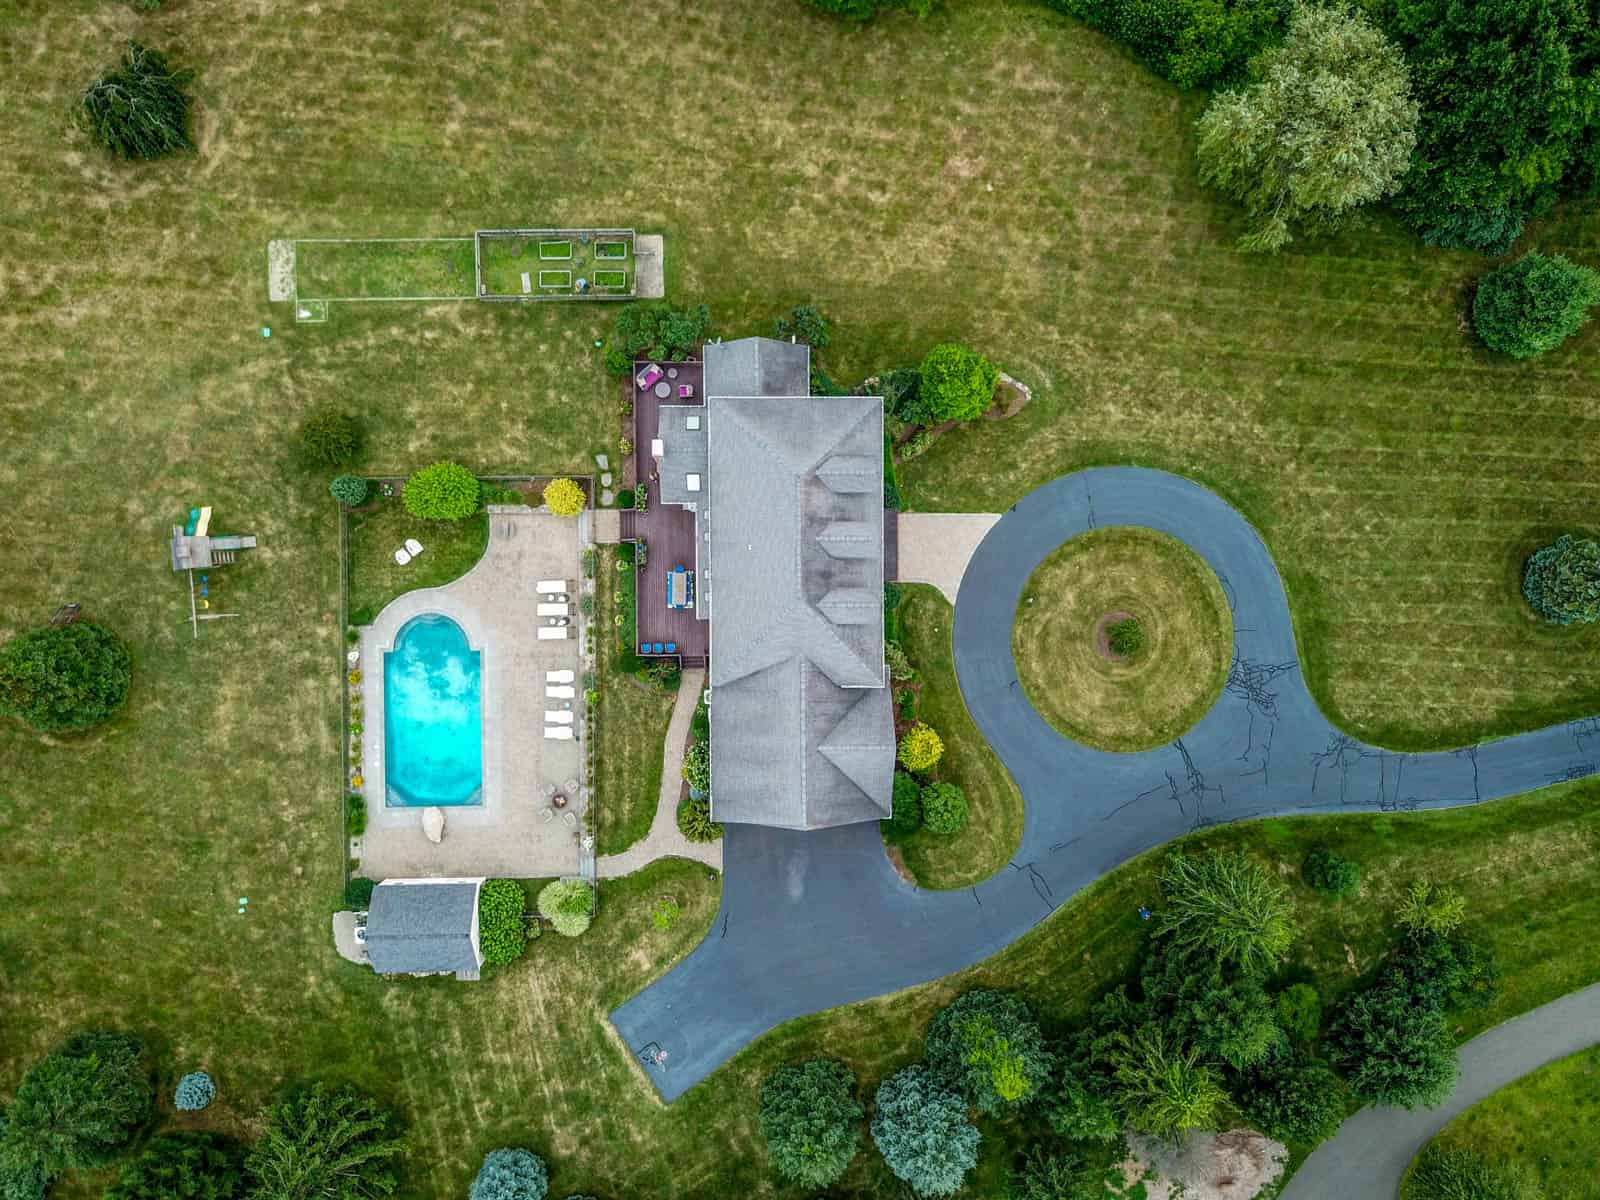 looking down at Connecticut home with mown lawn, circular driveway, and swimming pool in backyard with fire pit